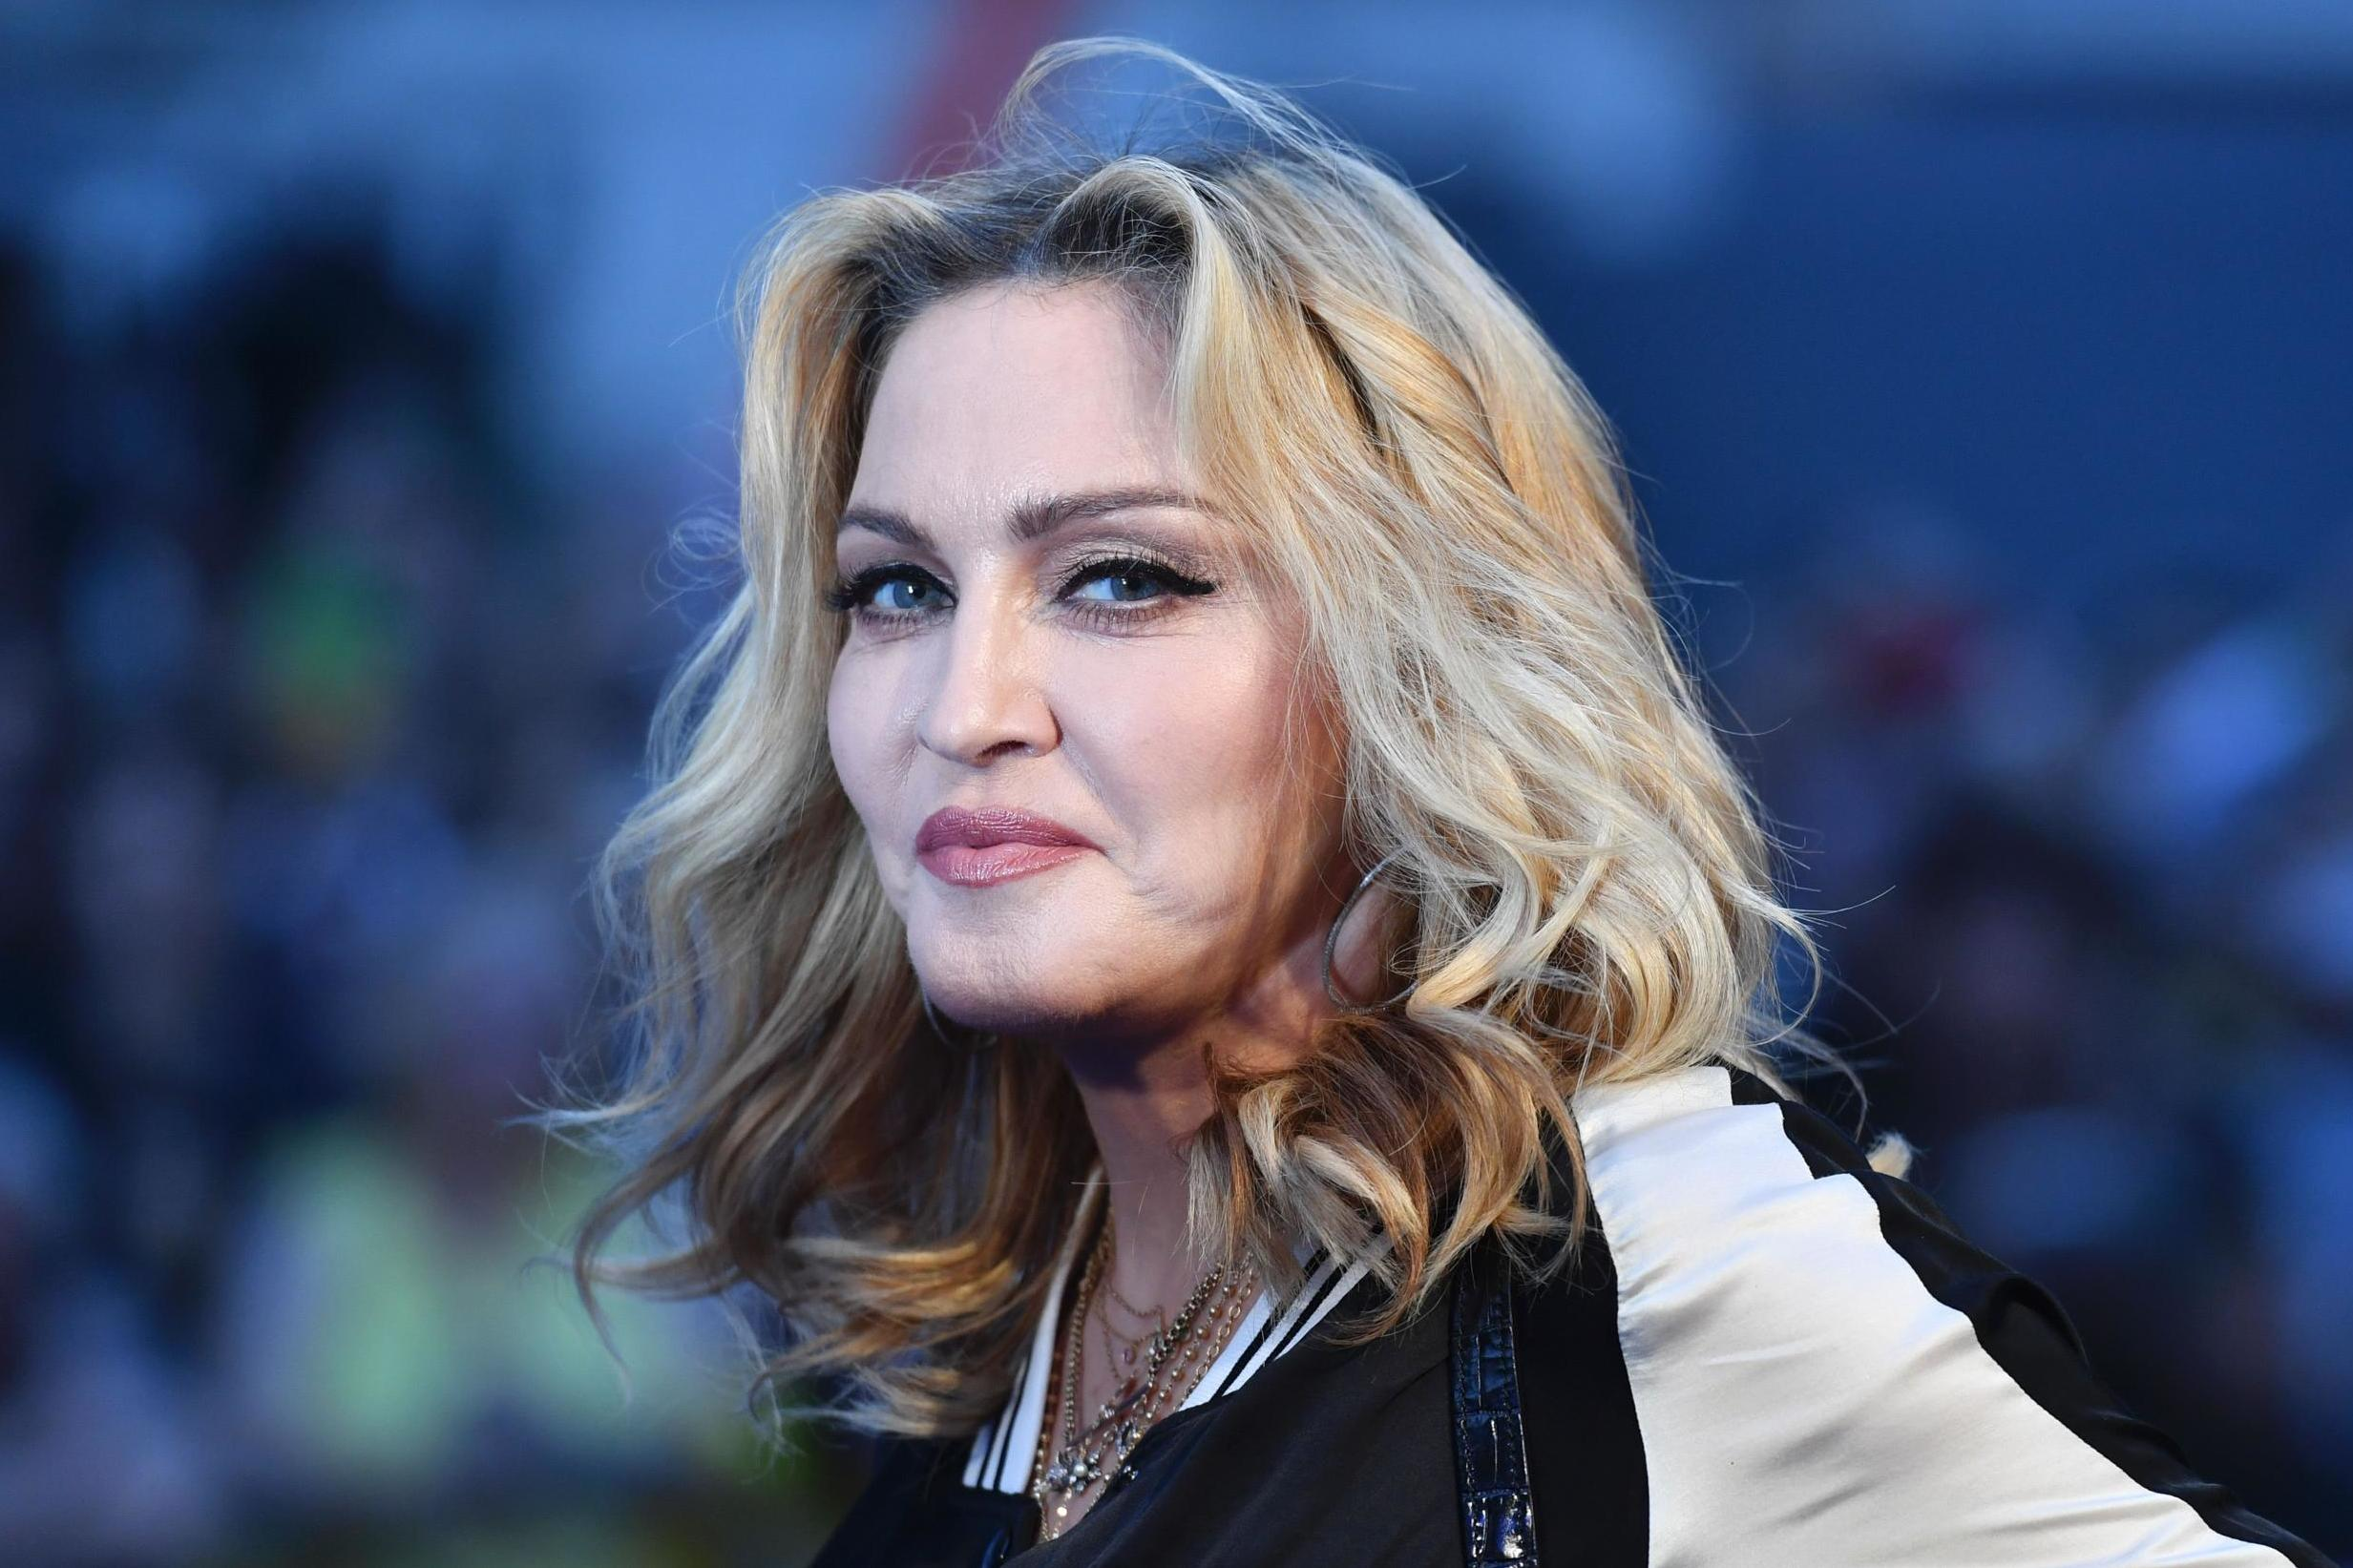 Madonna makes risqué Game of Thrones joke during gig with star Gwendoline Christie